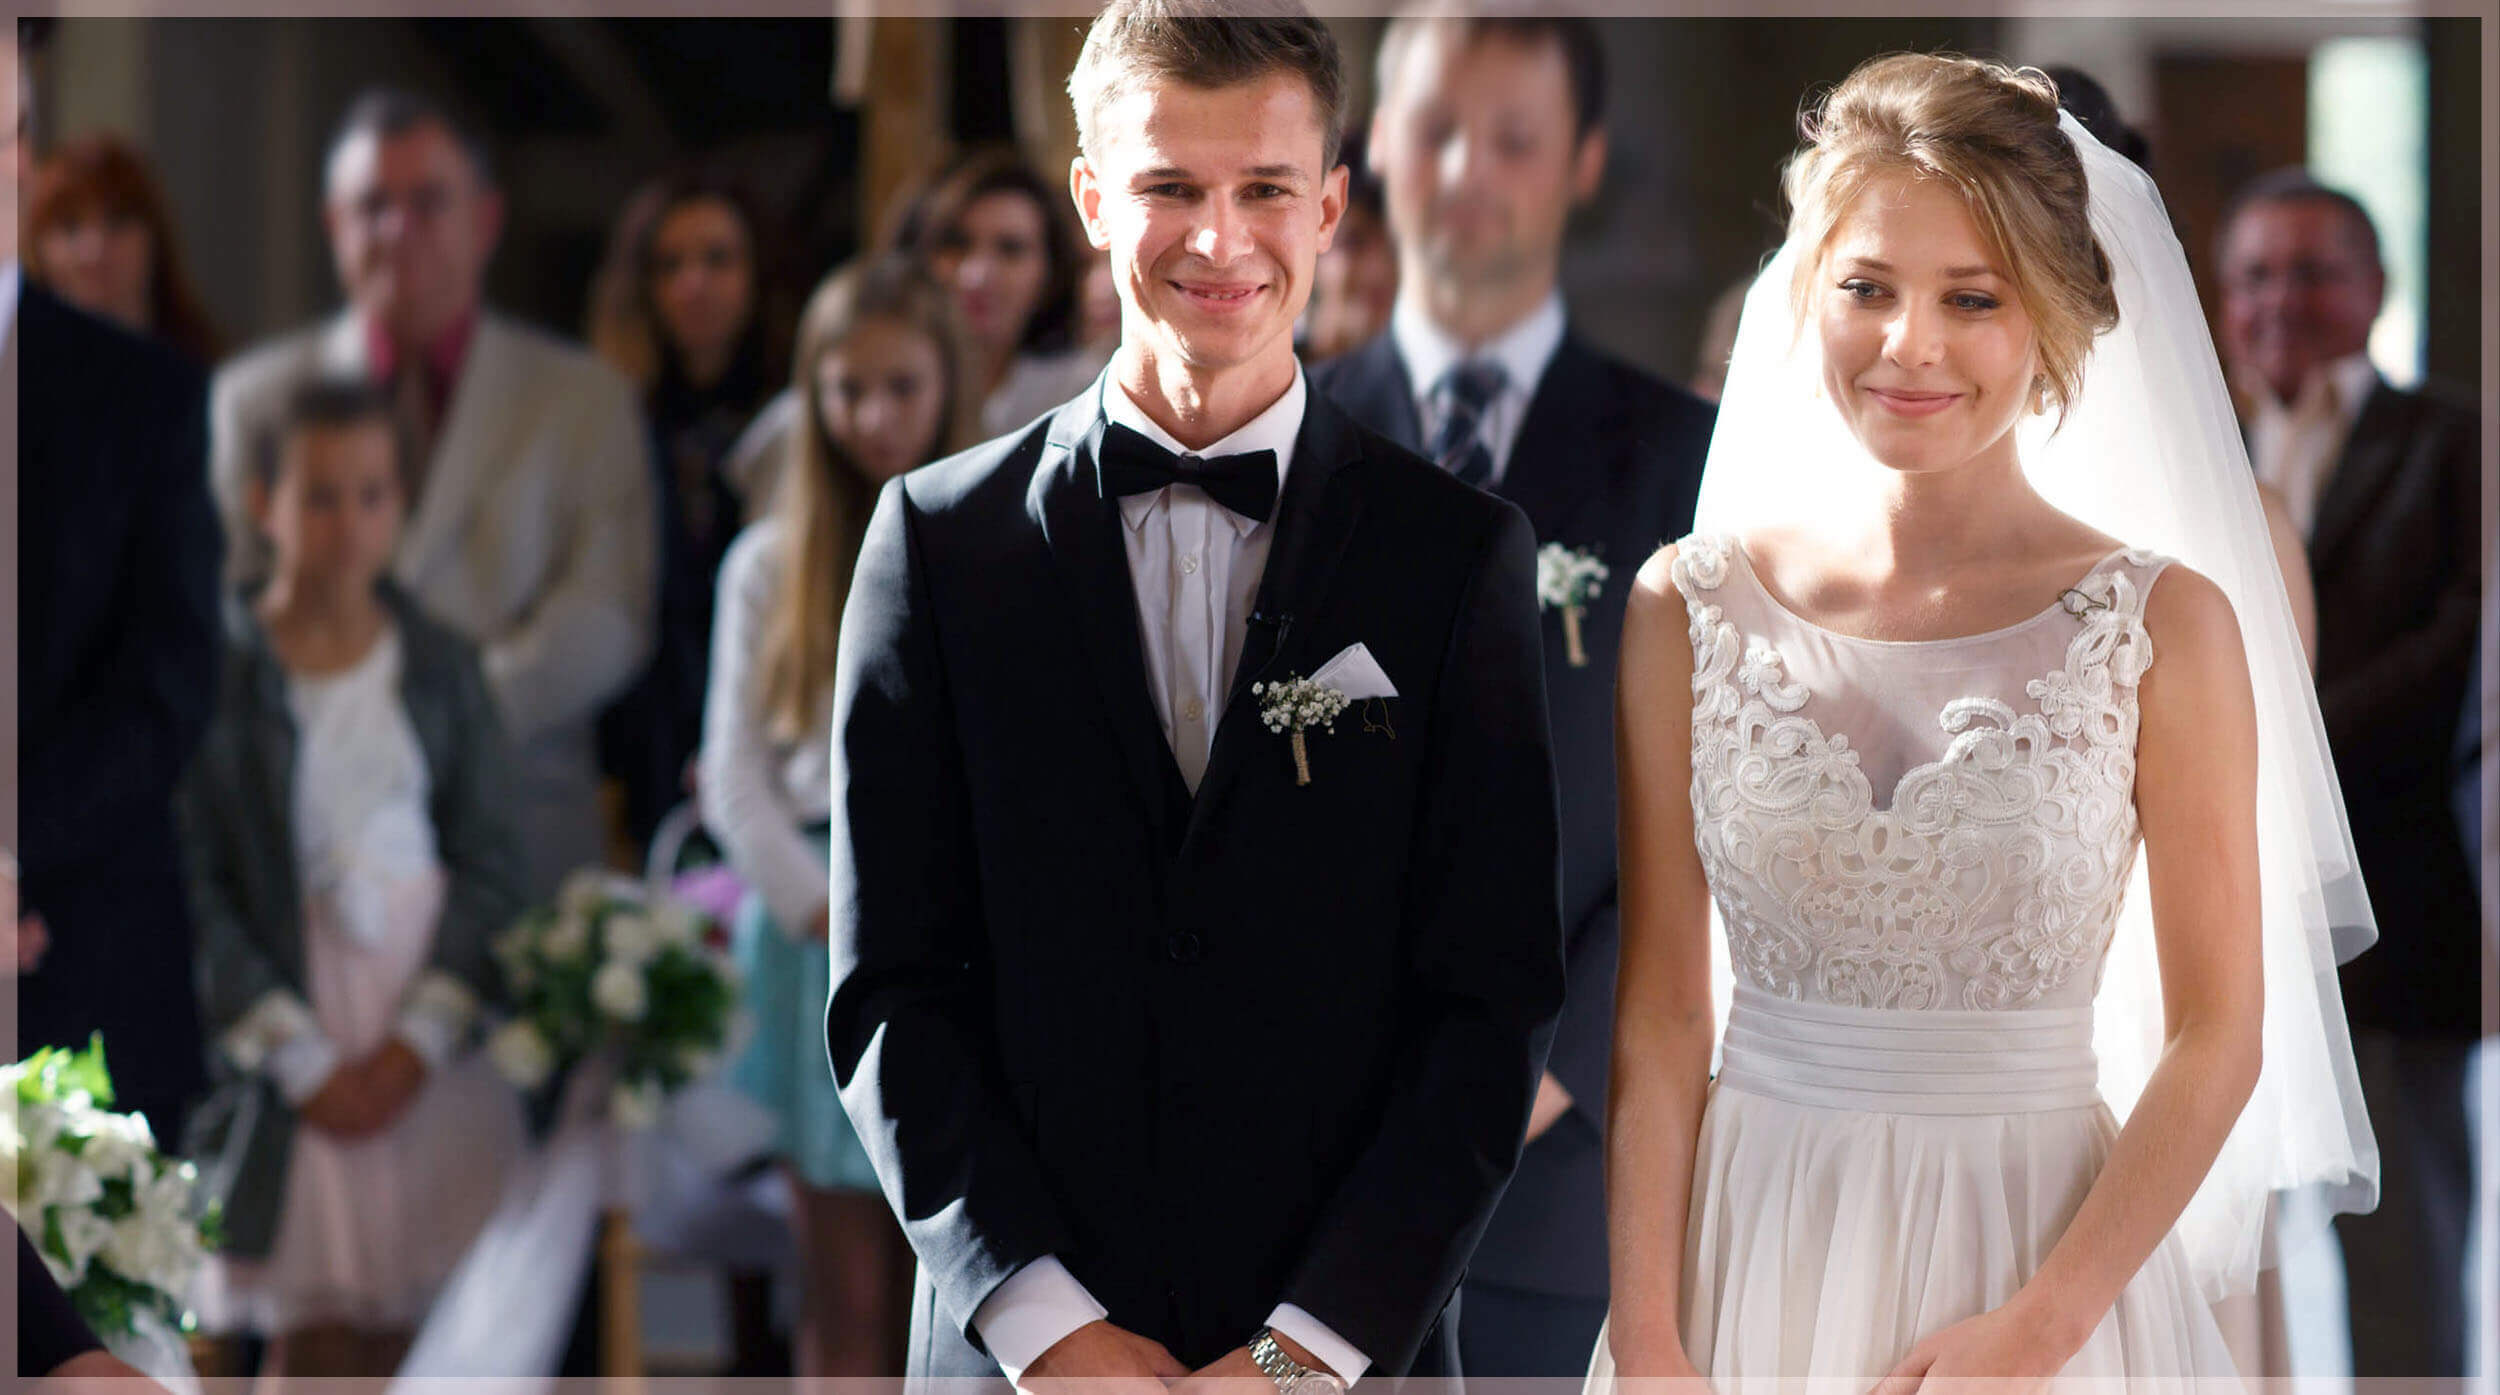 Taking wedding photos in low light: 7 things you need to know.